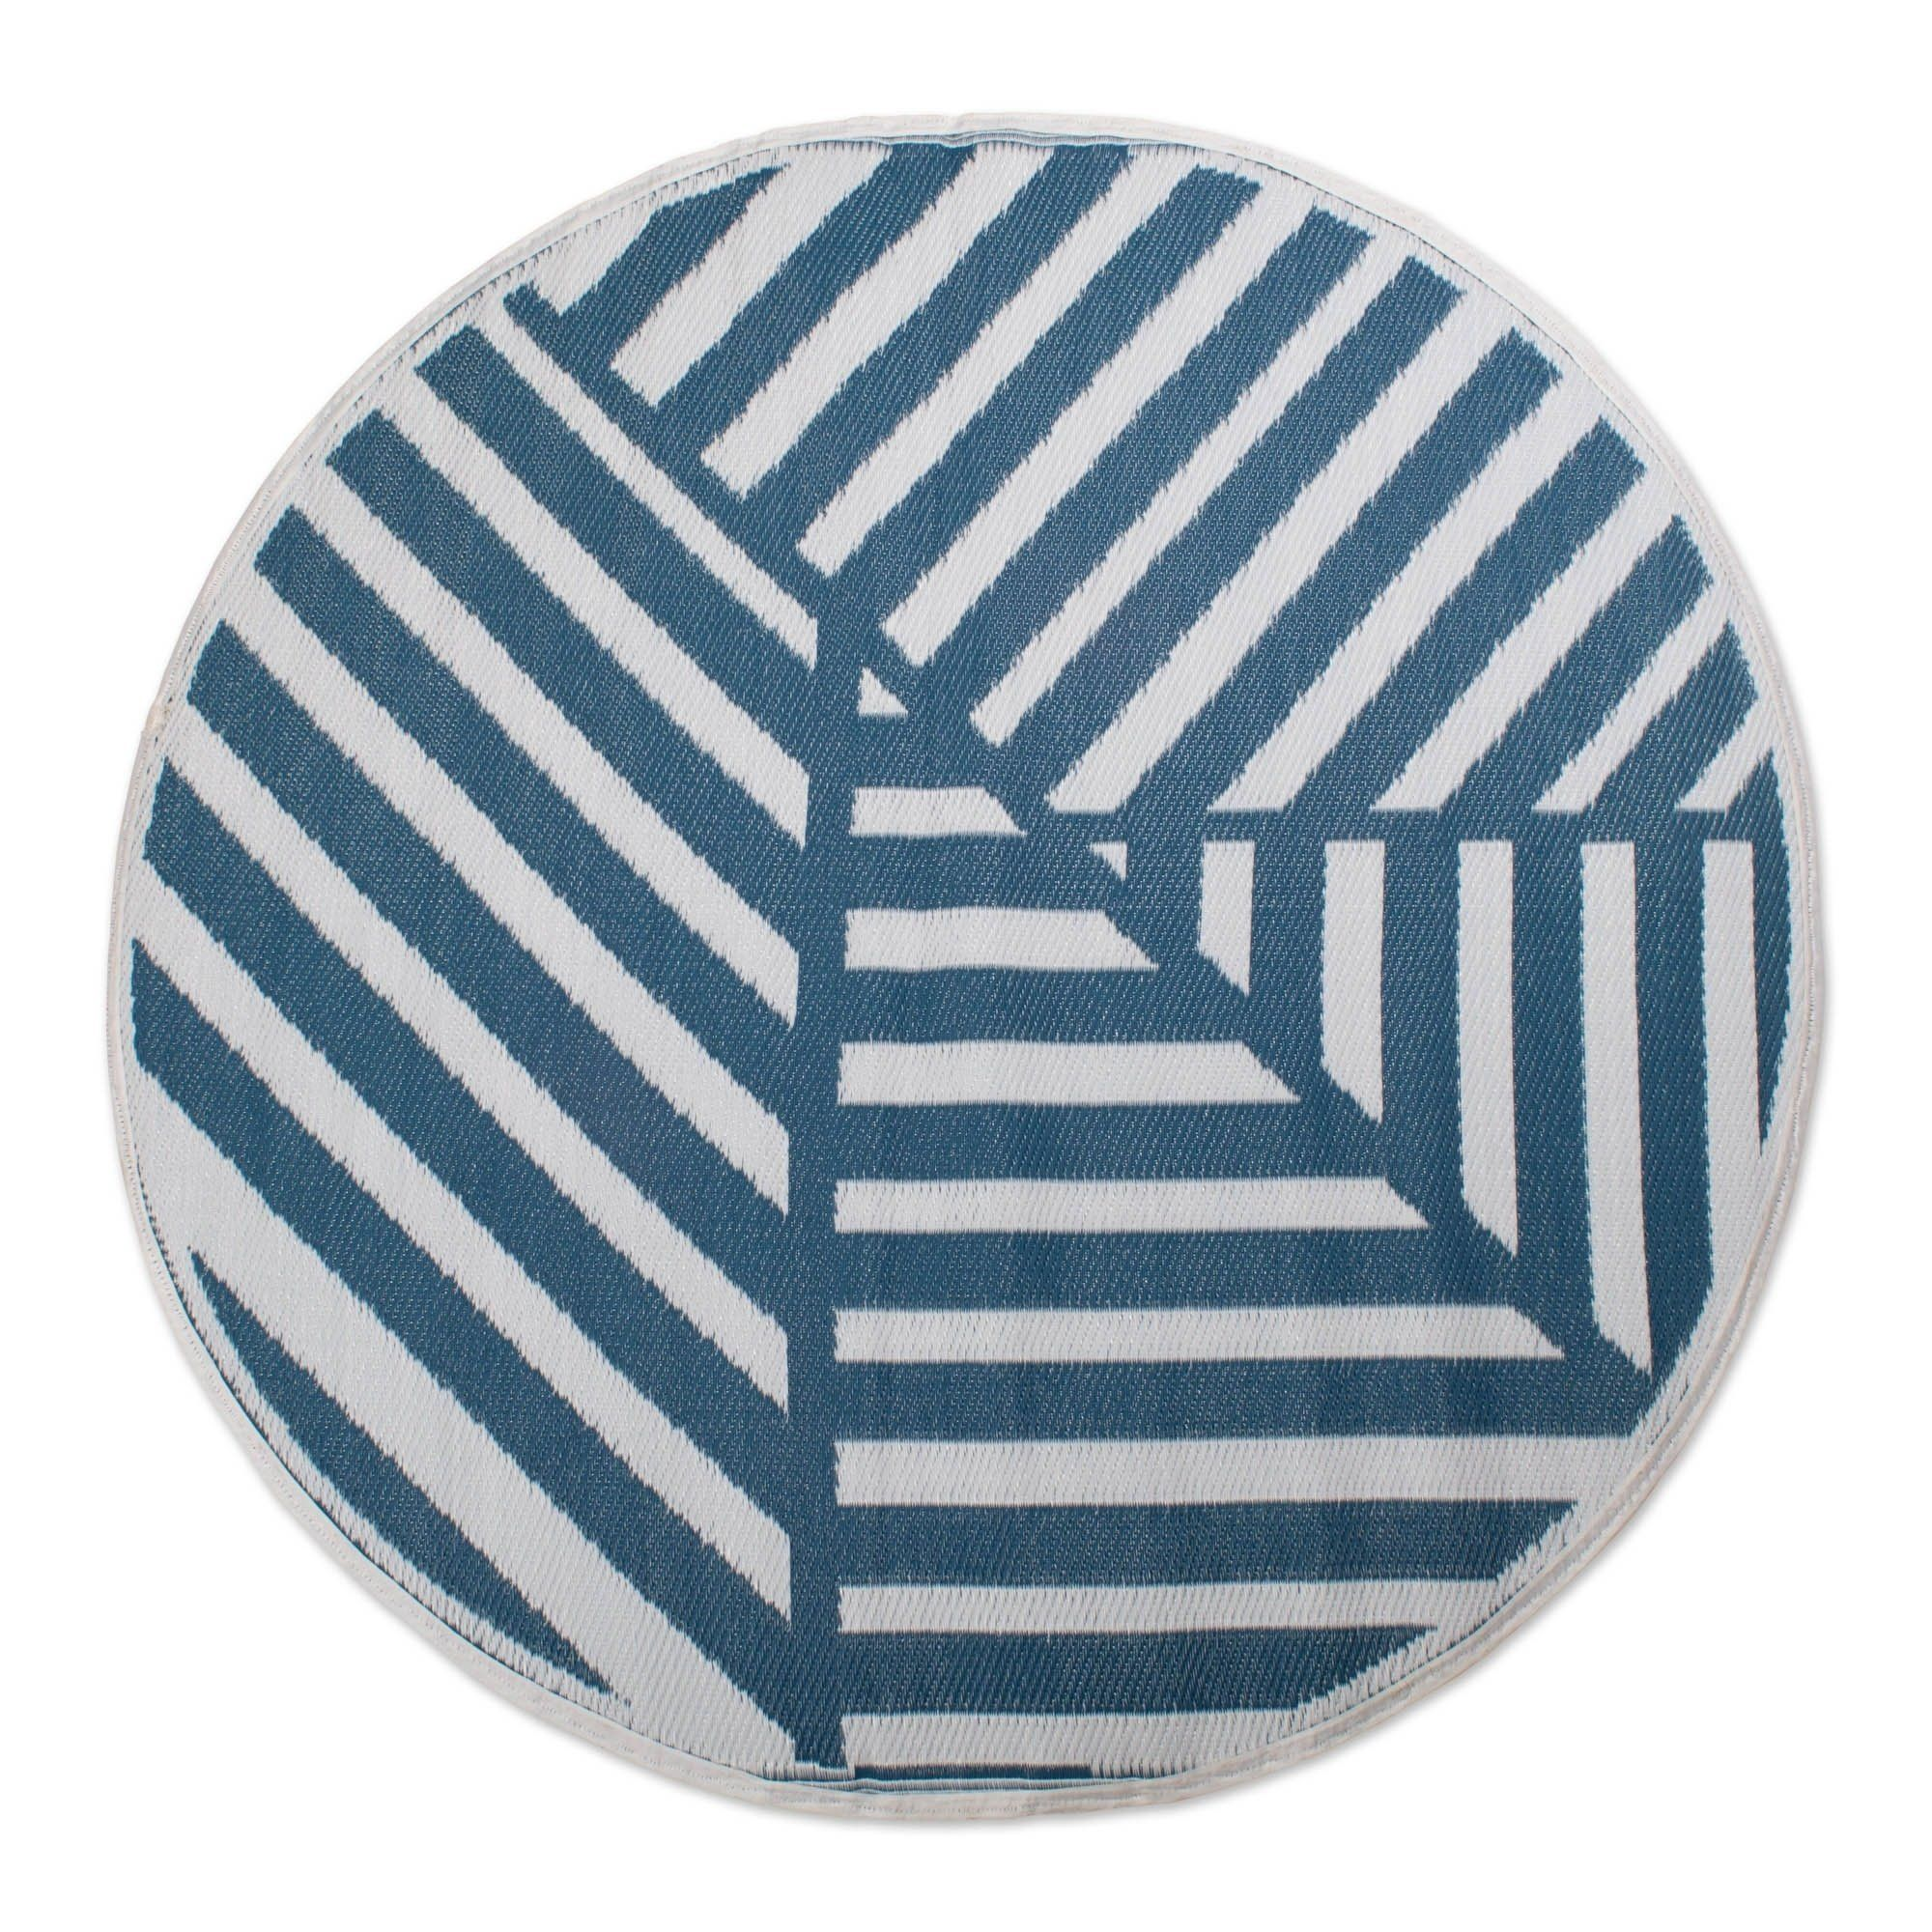 Dii Round Geometric Outdoor Rug Gray